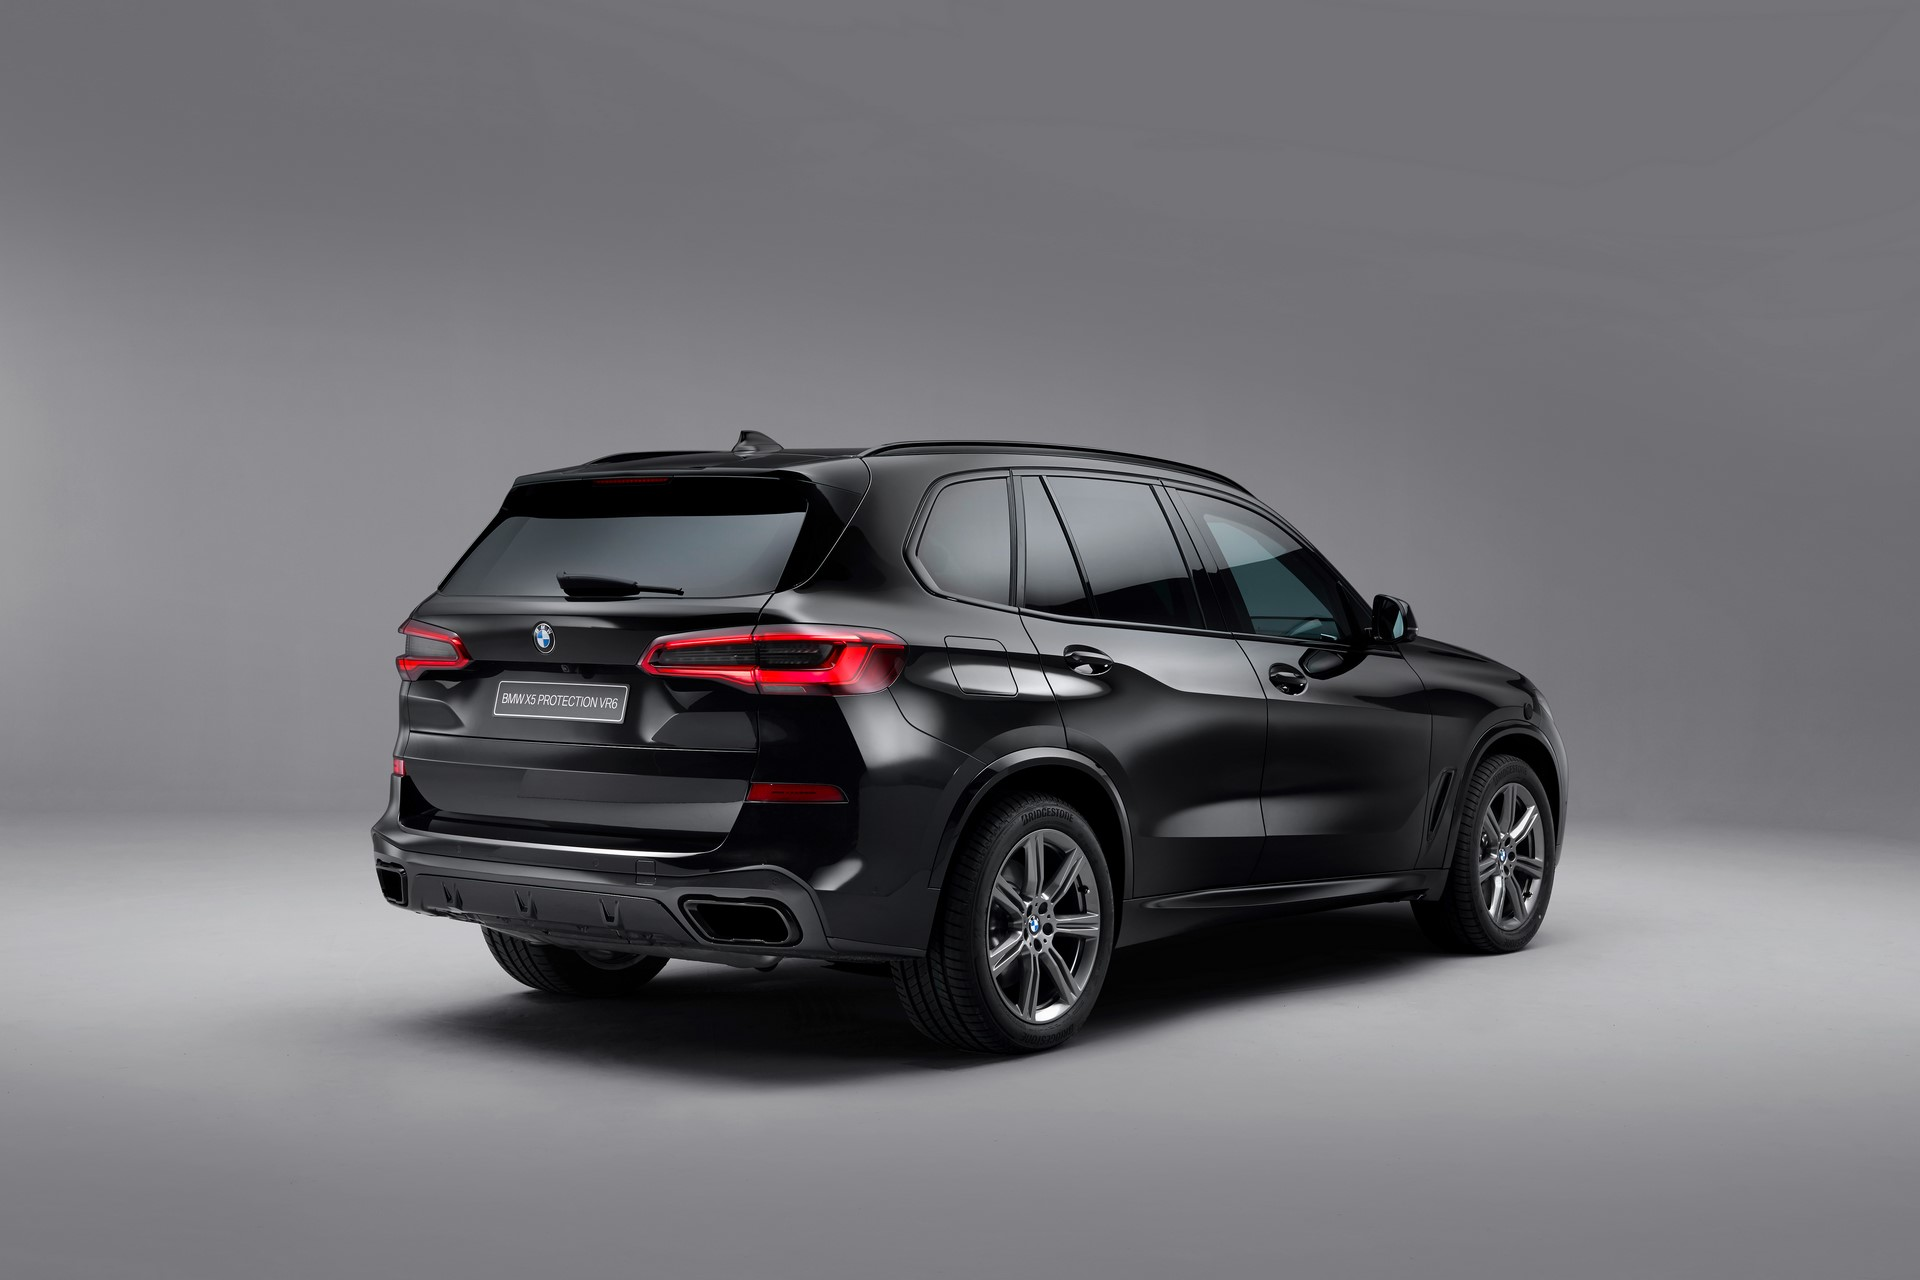 BMW-X5-Protection-VR6-4